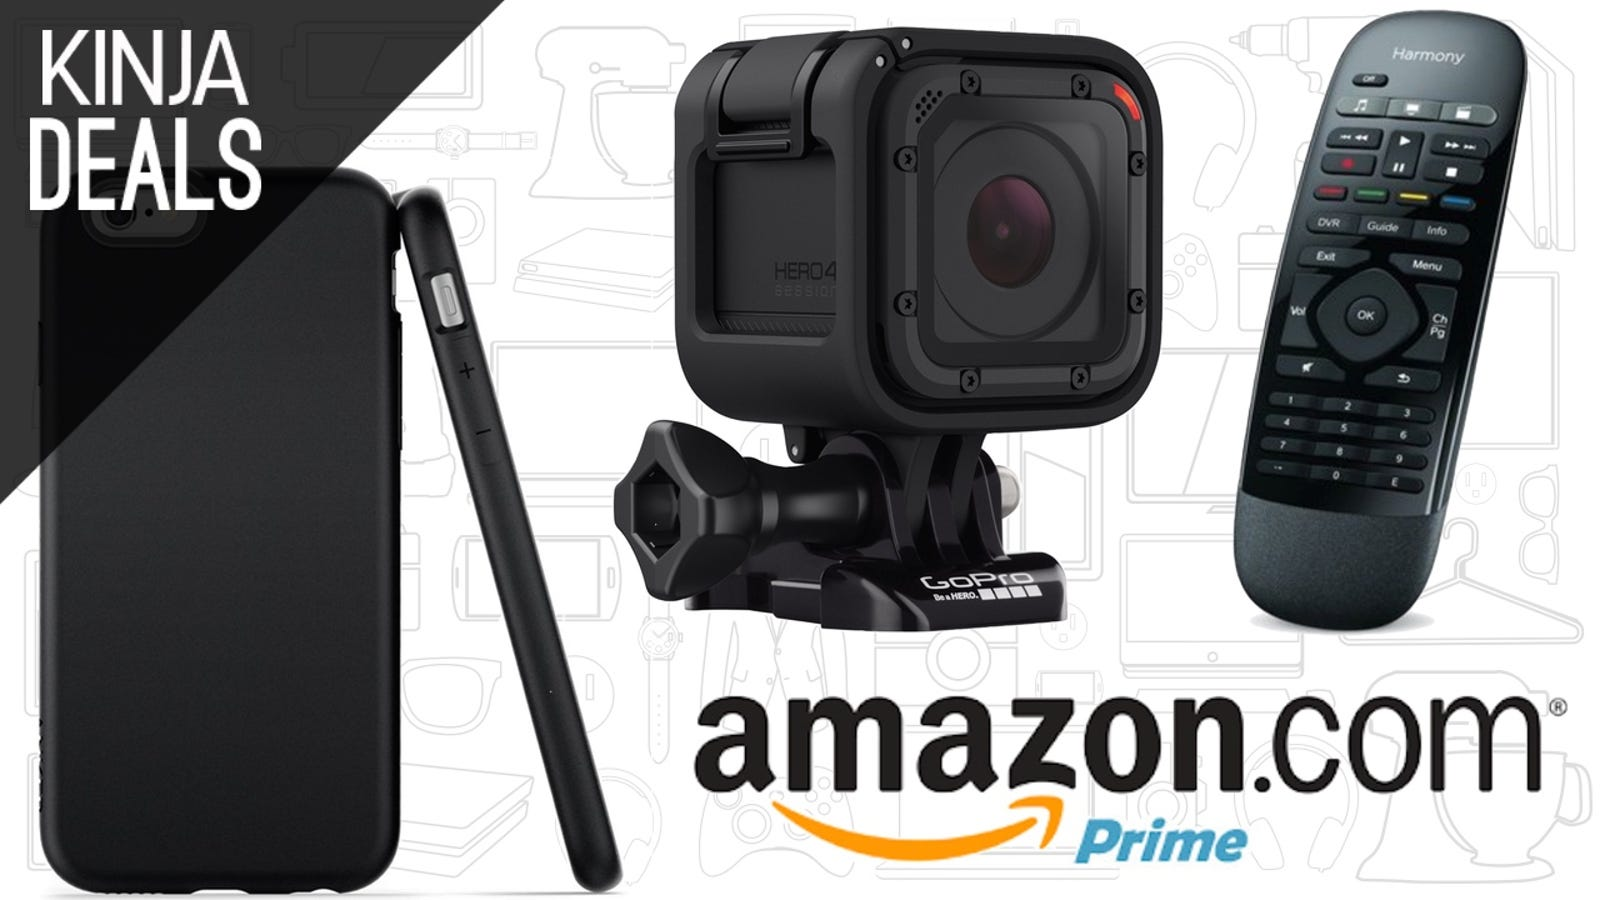 Todays Best Deals Amazon Prime Iphone Accessories Gopro Session Amazoncom Amazonbasics 3button Usb Wired Mouse Black Electronics And More